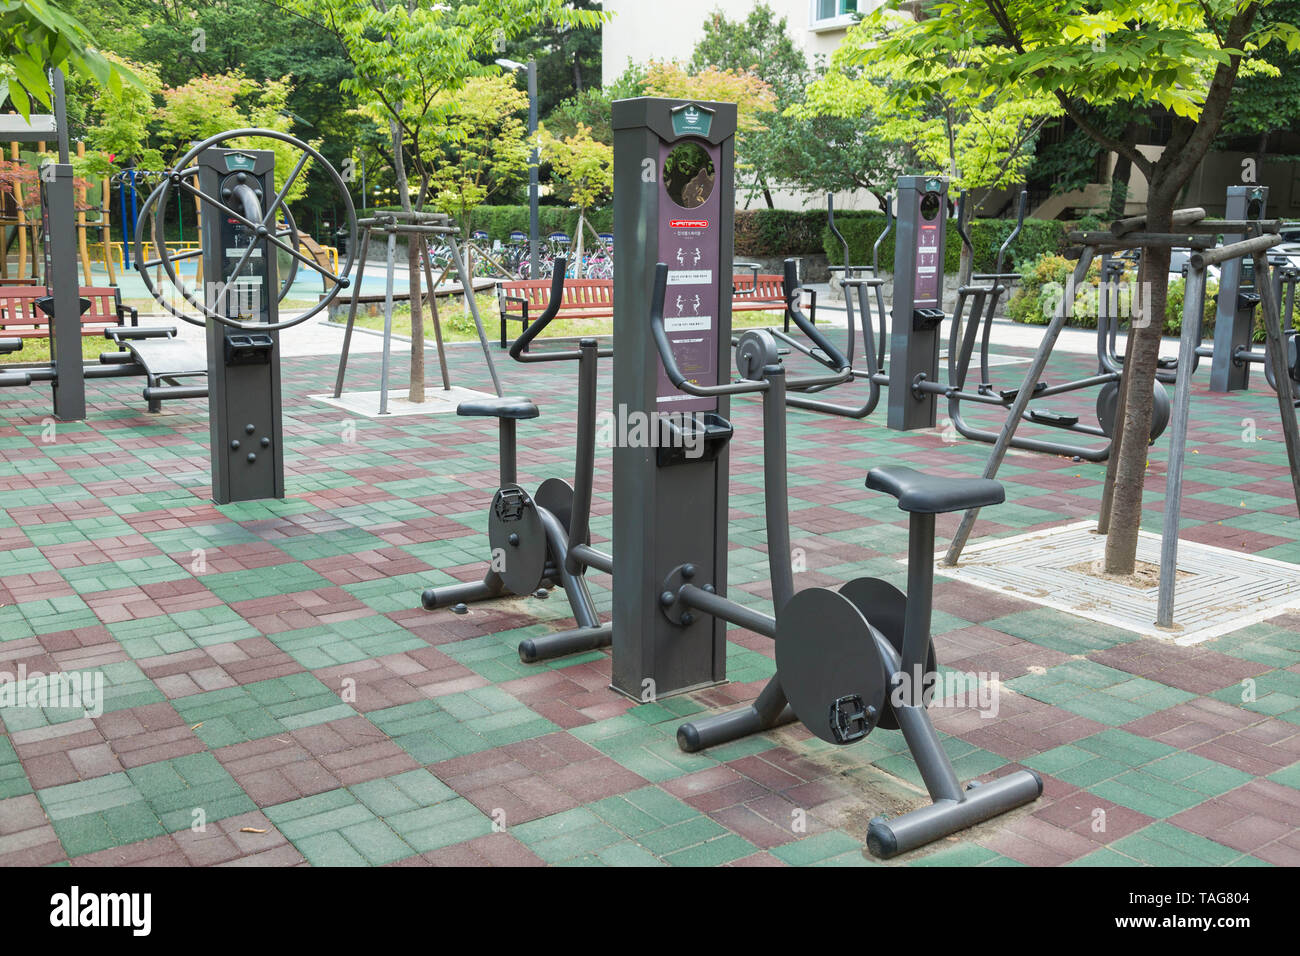 Various exercise equipment for public to use at most of parks in cities, popular among elderly people .  Seoul, South Korea. - Stock Image